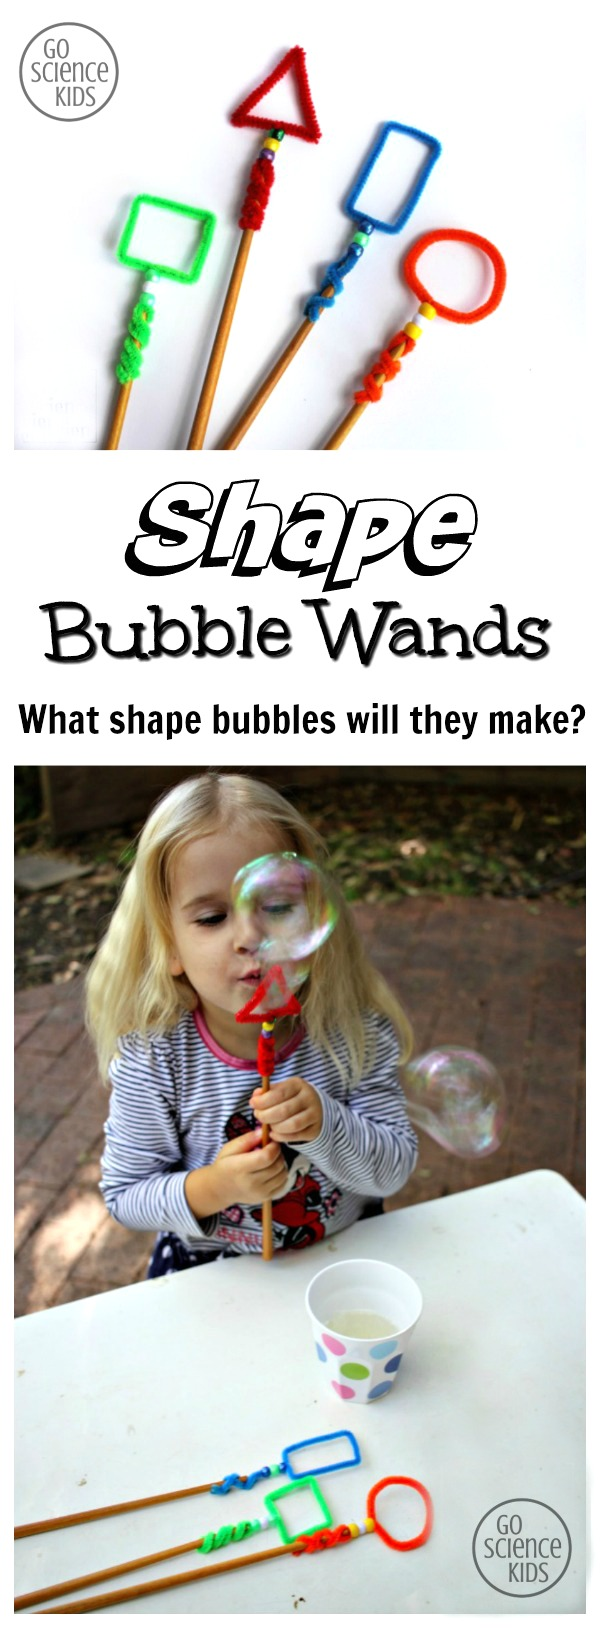 Shape Bubble Wands - what size bubbles will they make